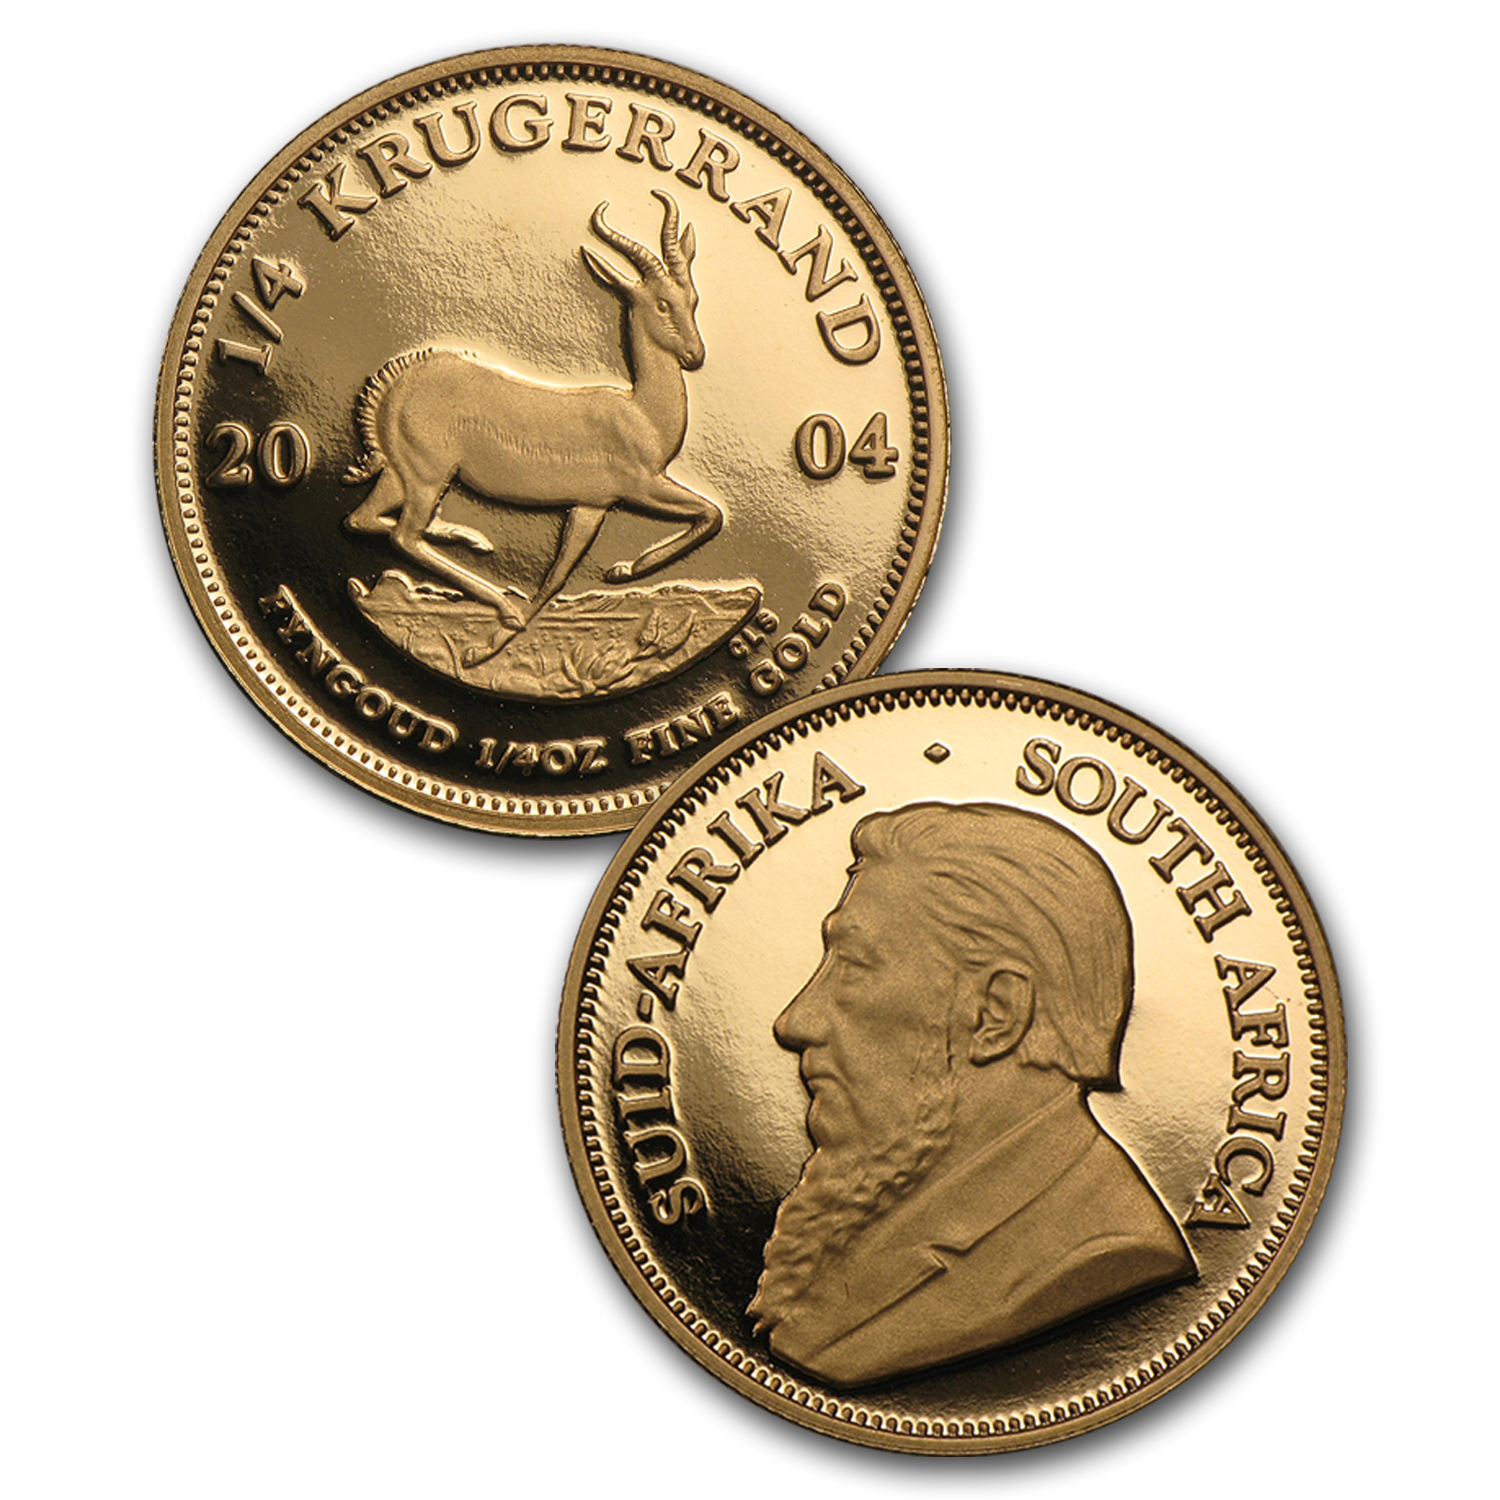 2004 South Africa 5-Coin Gold Krugerrand Proof Set (Paul Kruger)